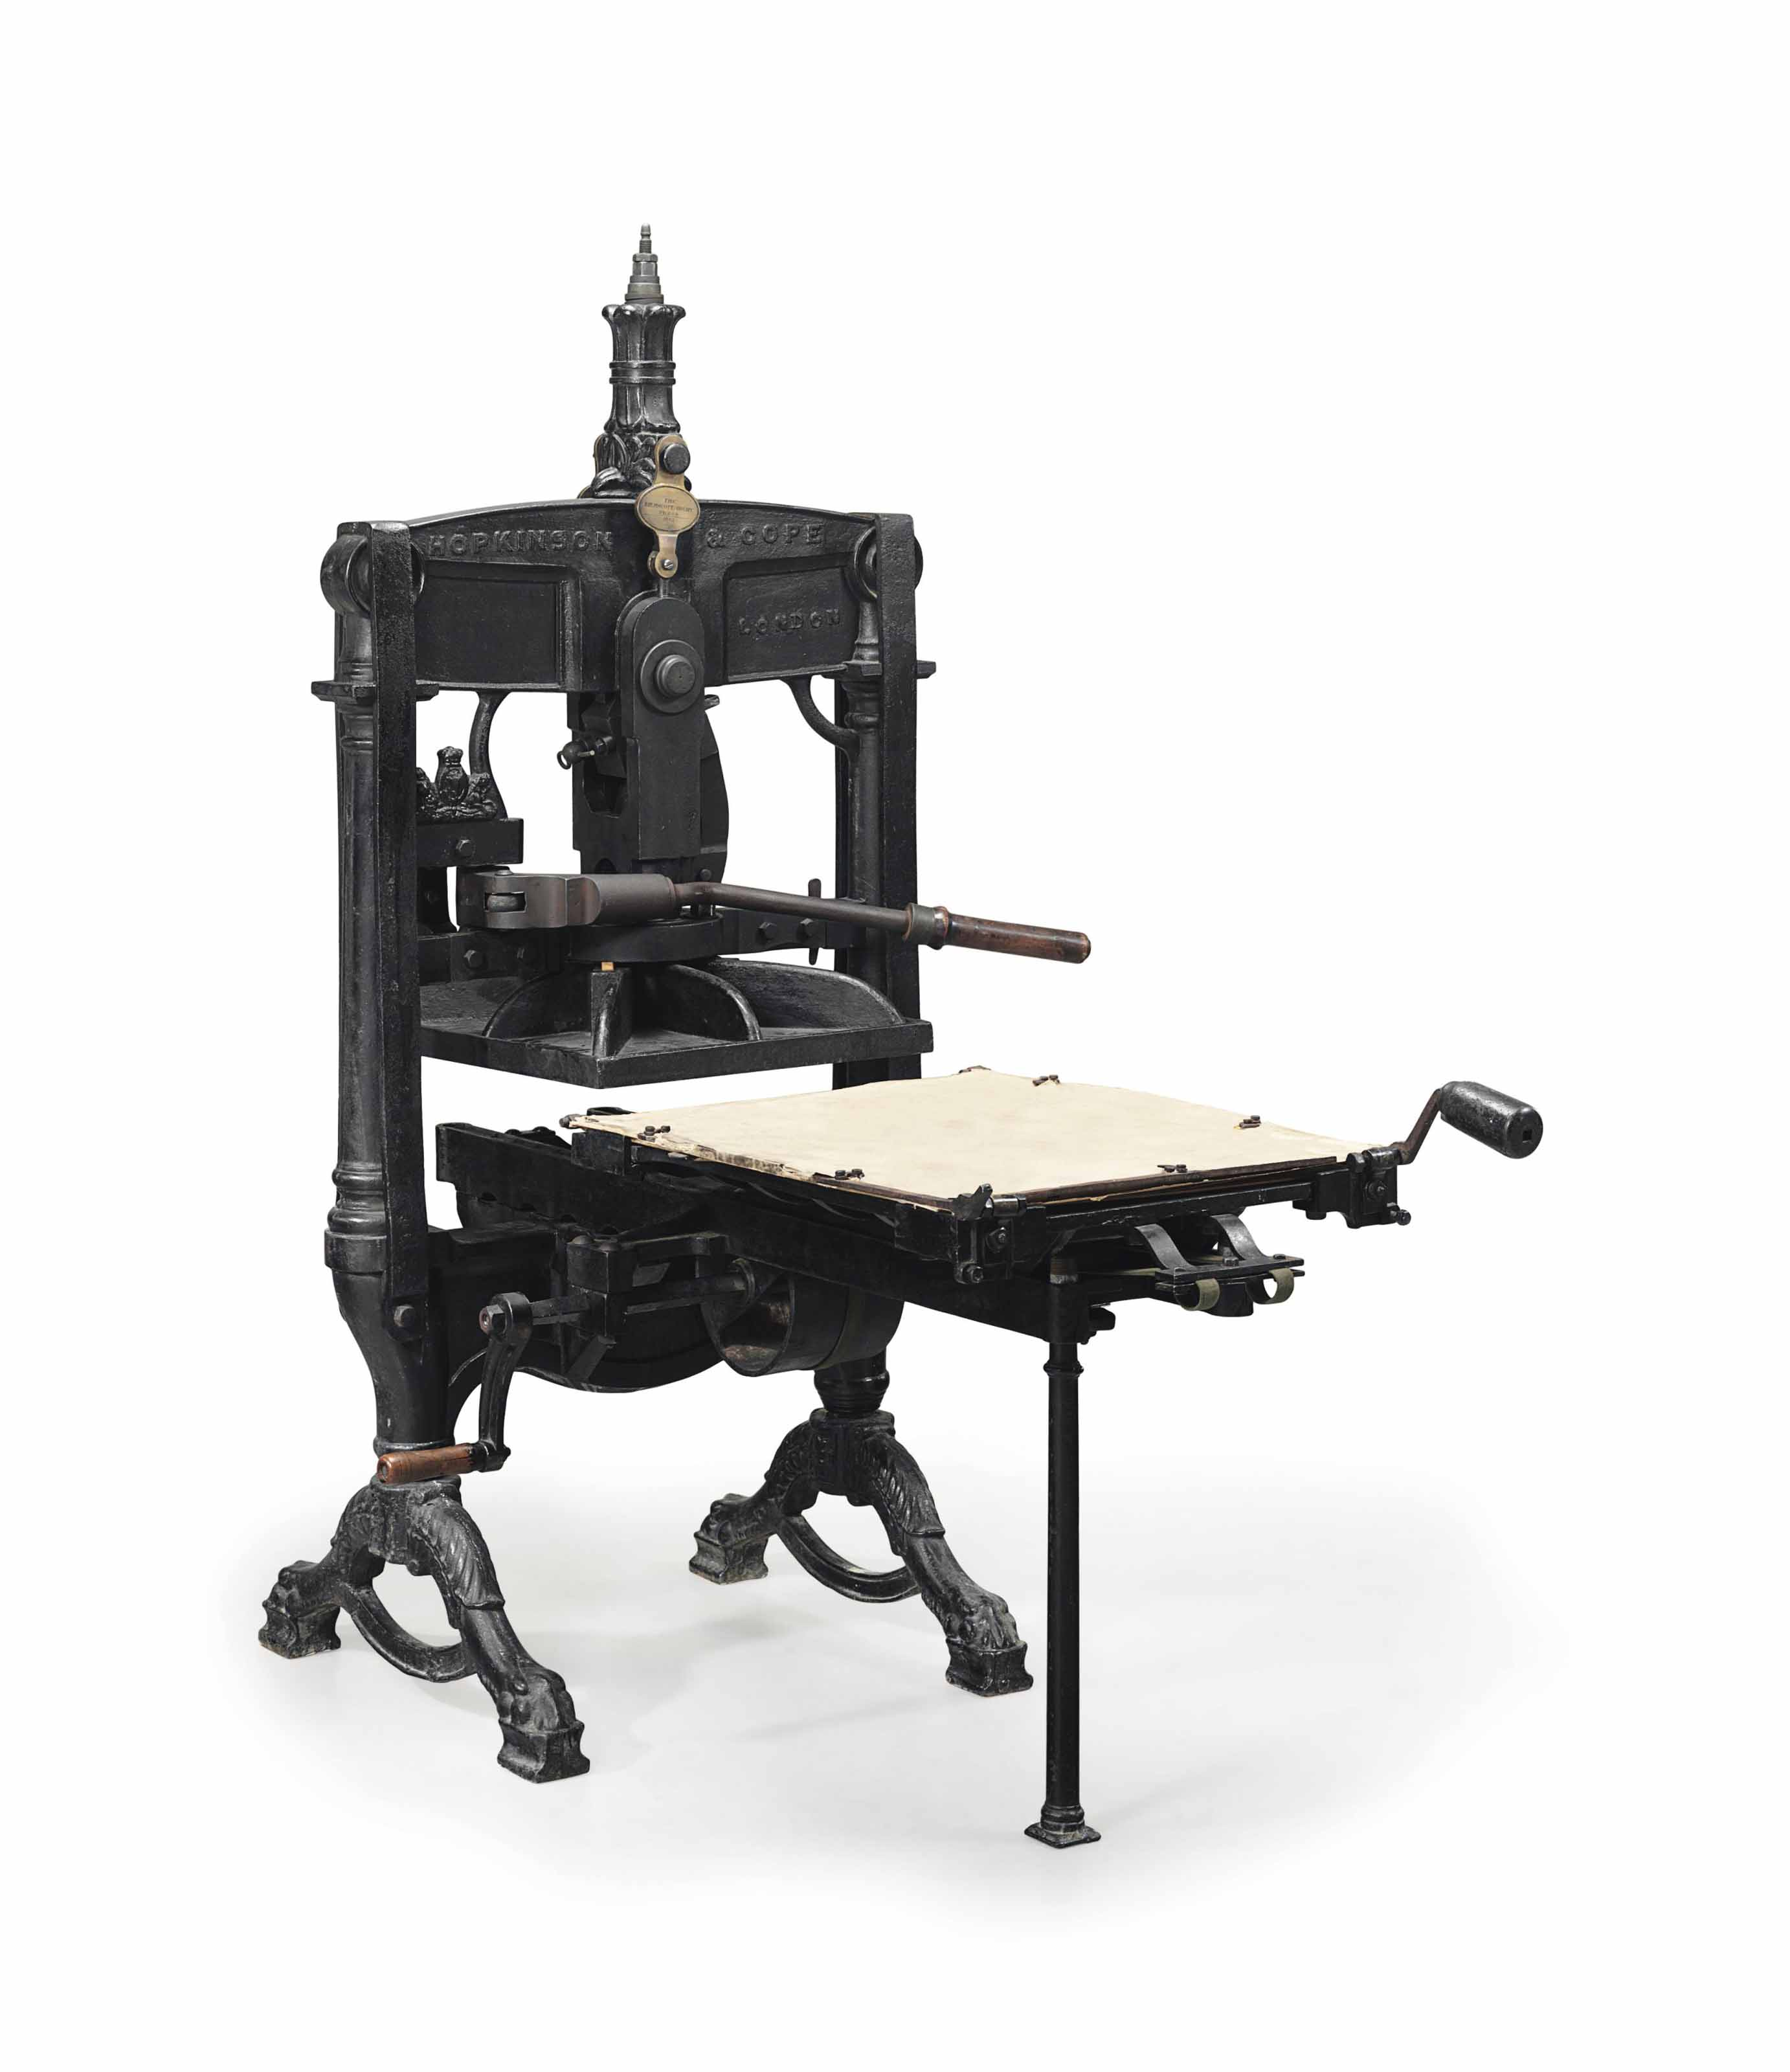 KELMSCOTT PRESS -- Floor model Albion Press No. 6551 made by Hopkinson & Cope and used by William Morris's Kelmscott Press. Manufactured in 1891.